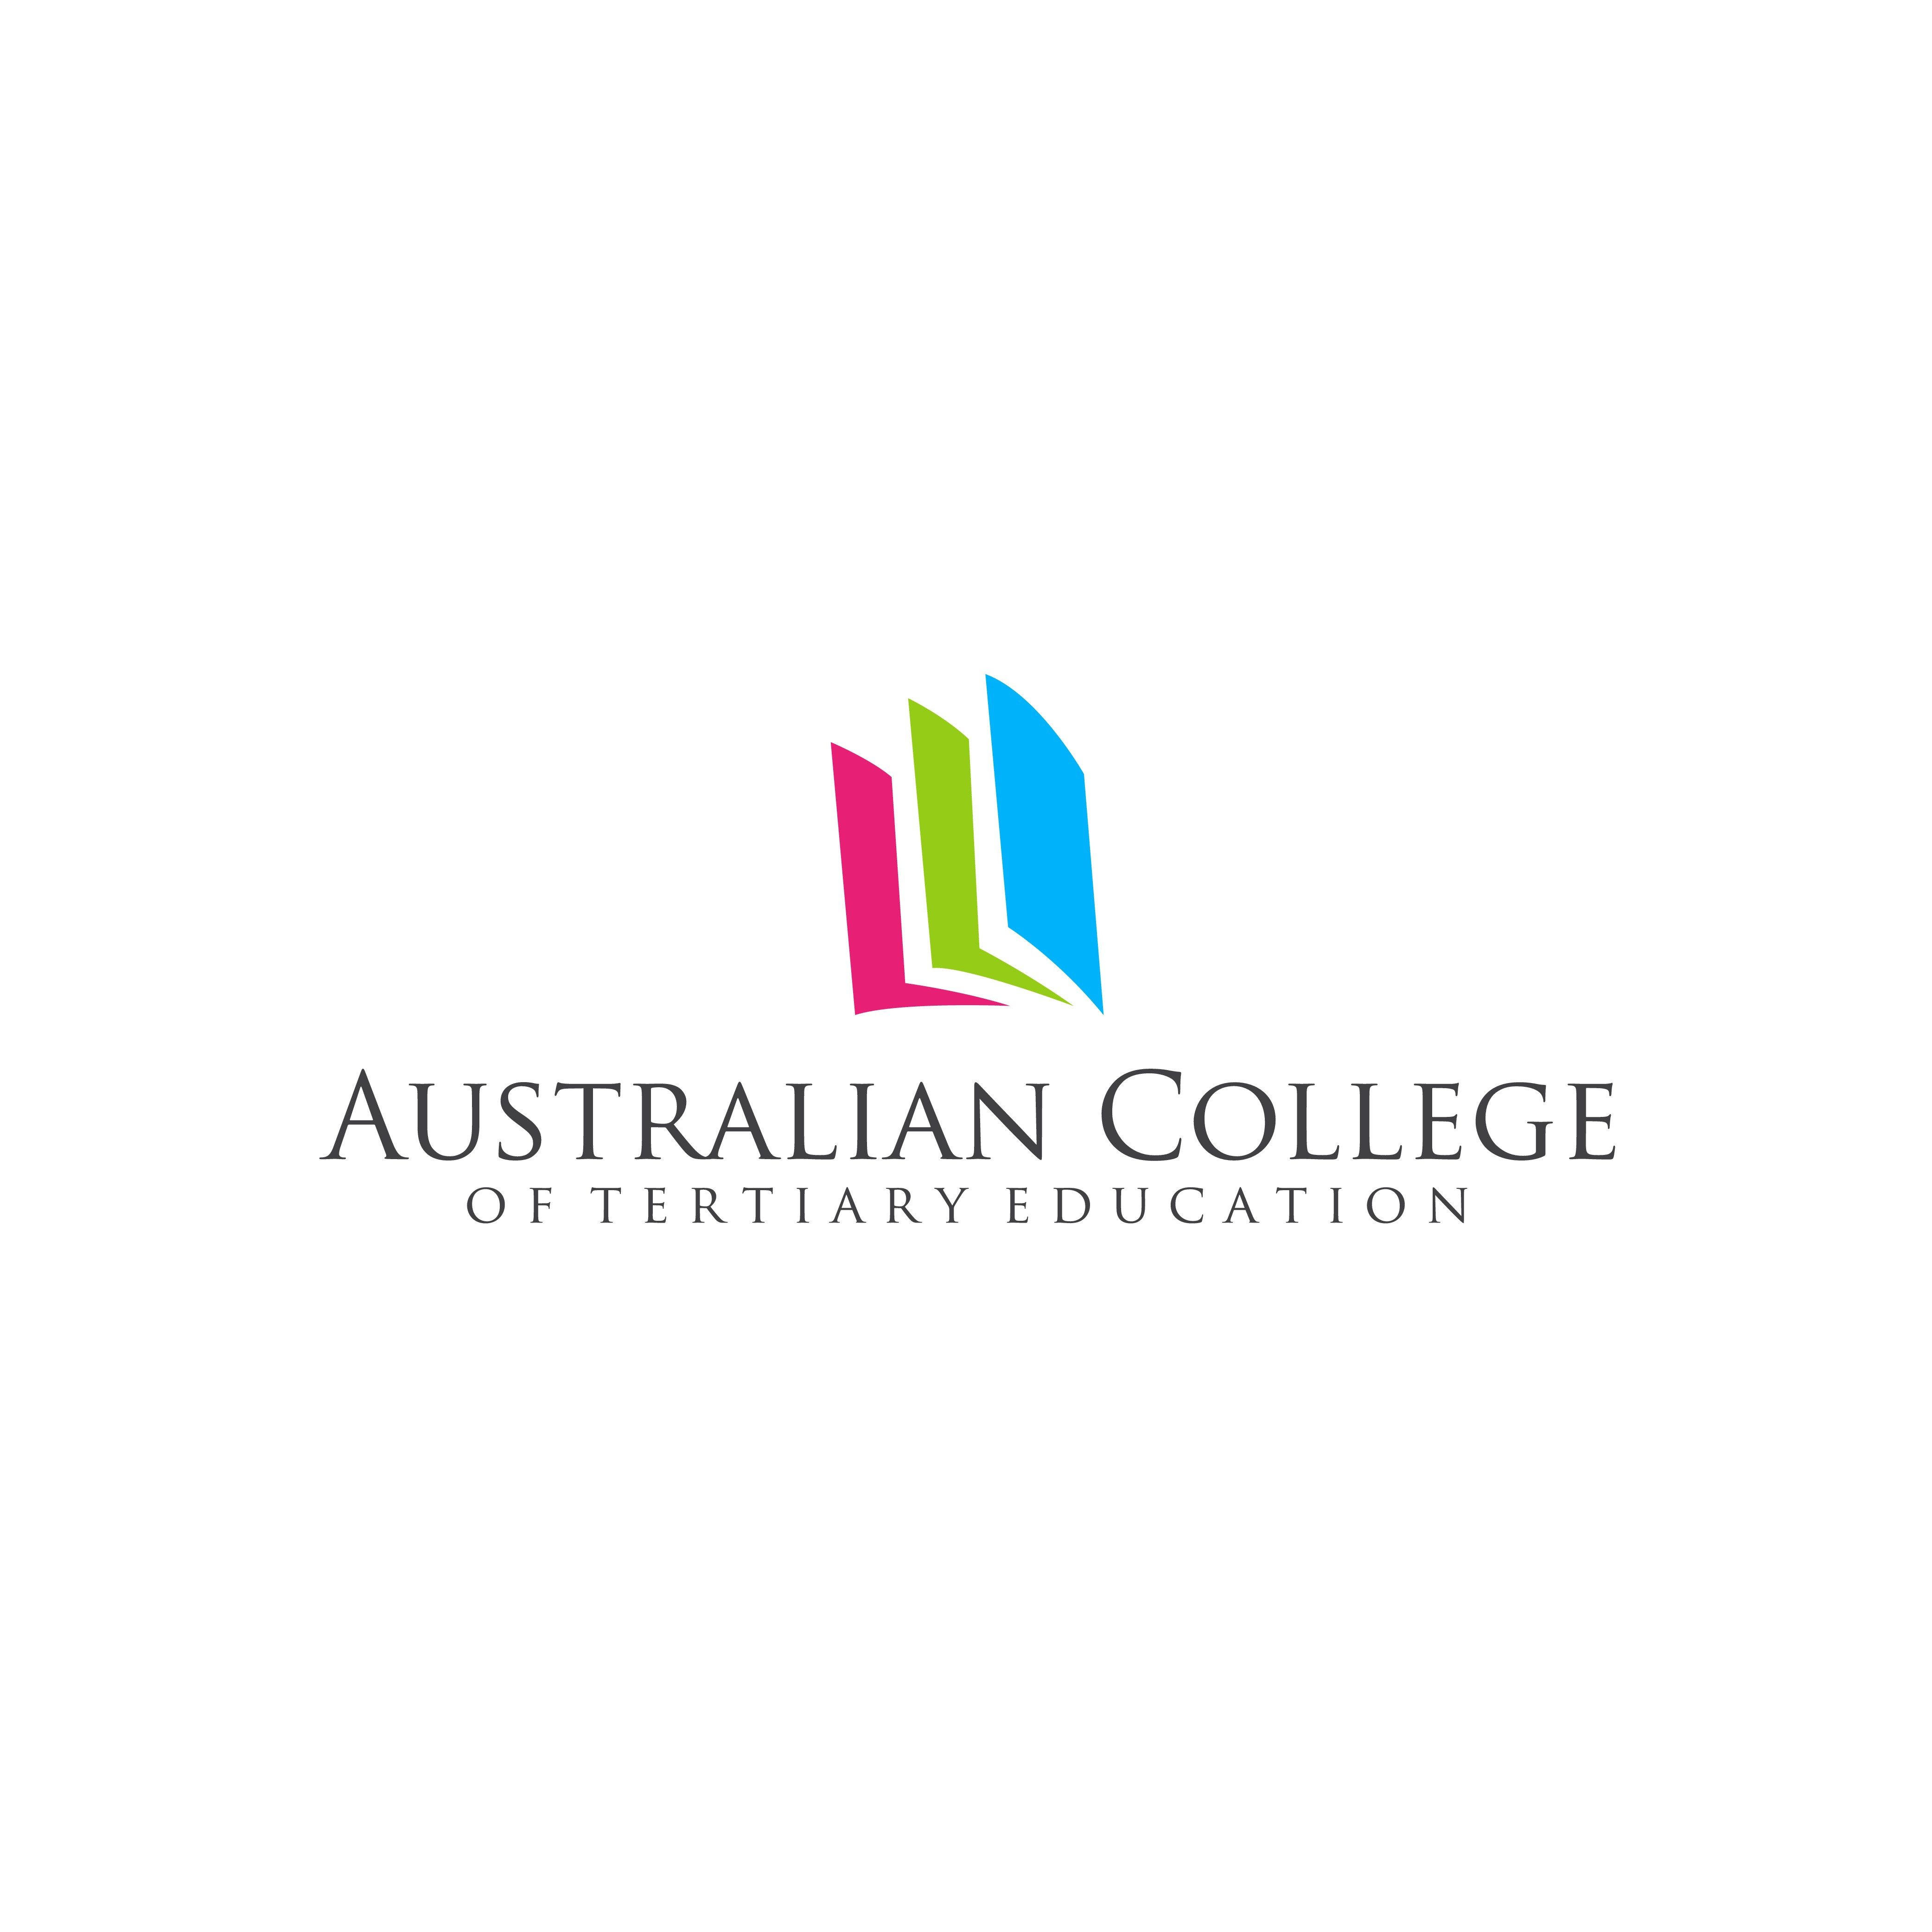 innovative educational college looking for its place in Australia